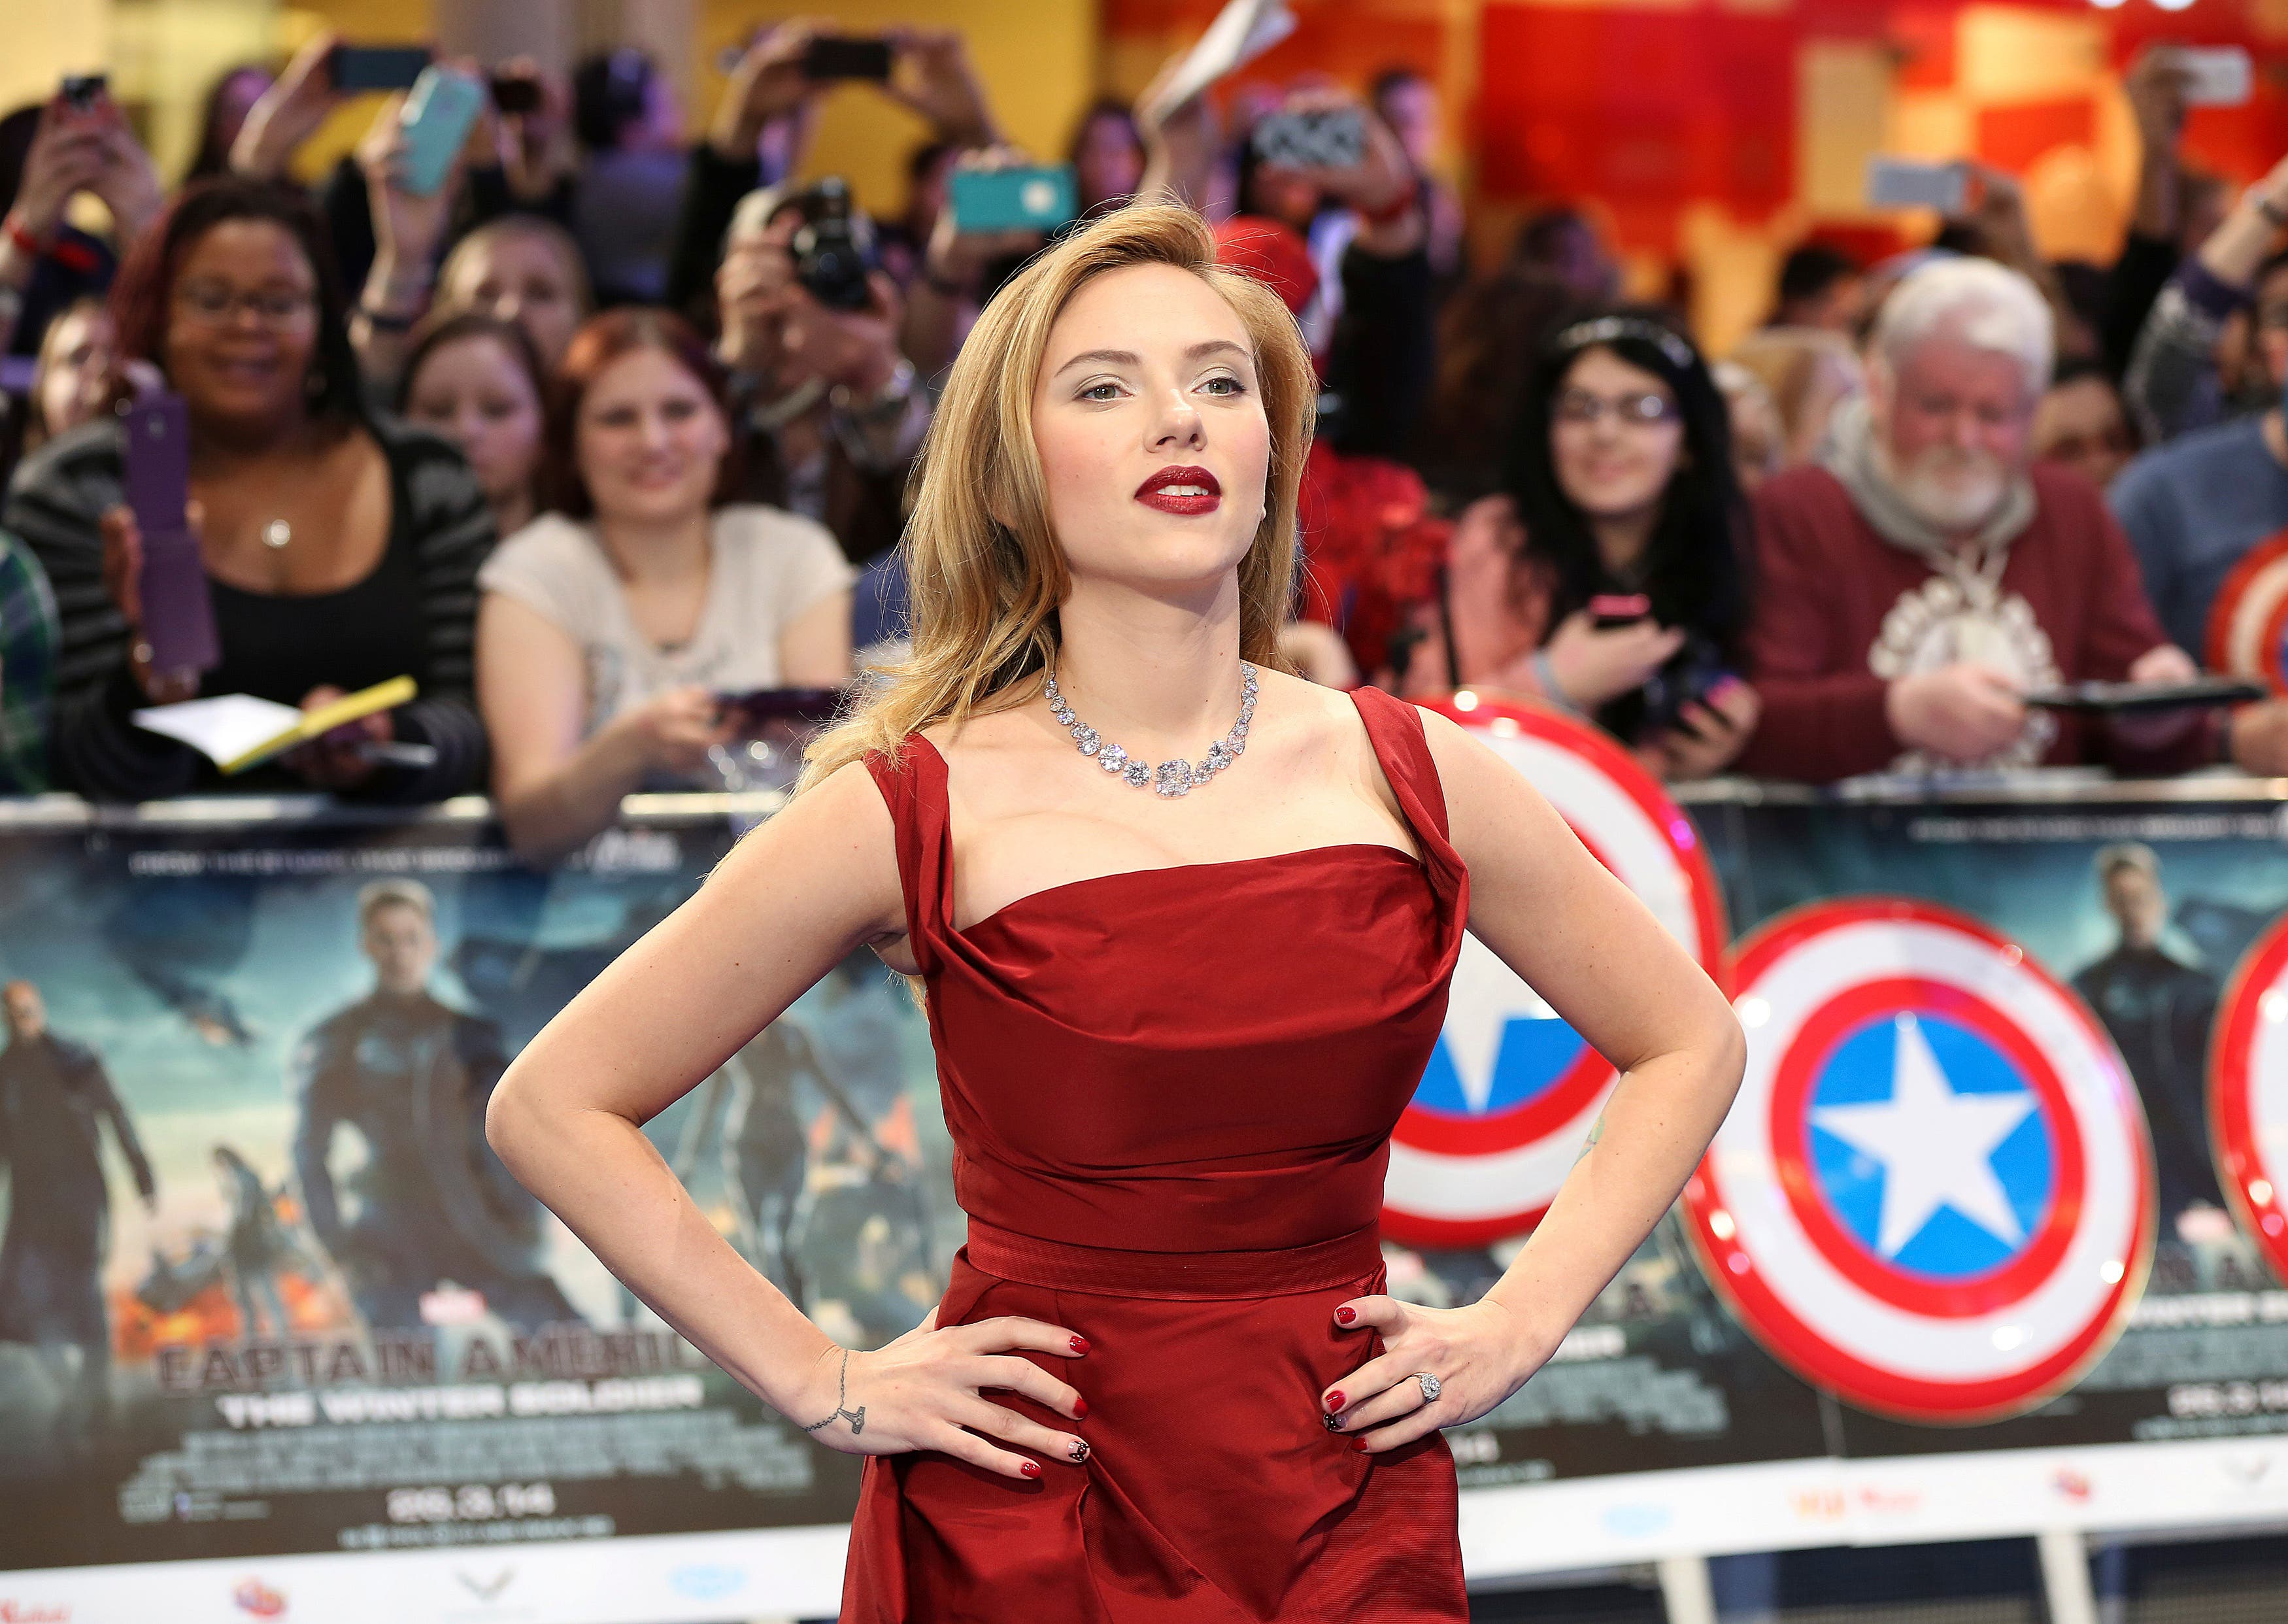 Actress Scarlett Johansson, who came 2nd on the list. (Reuters)